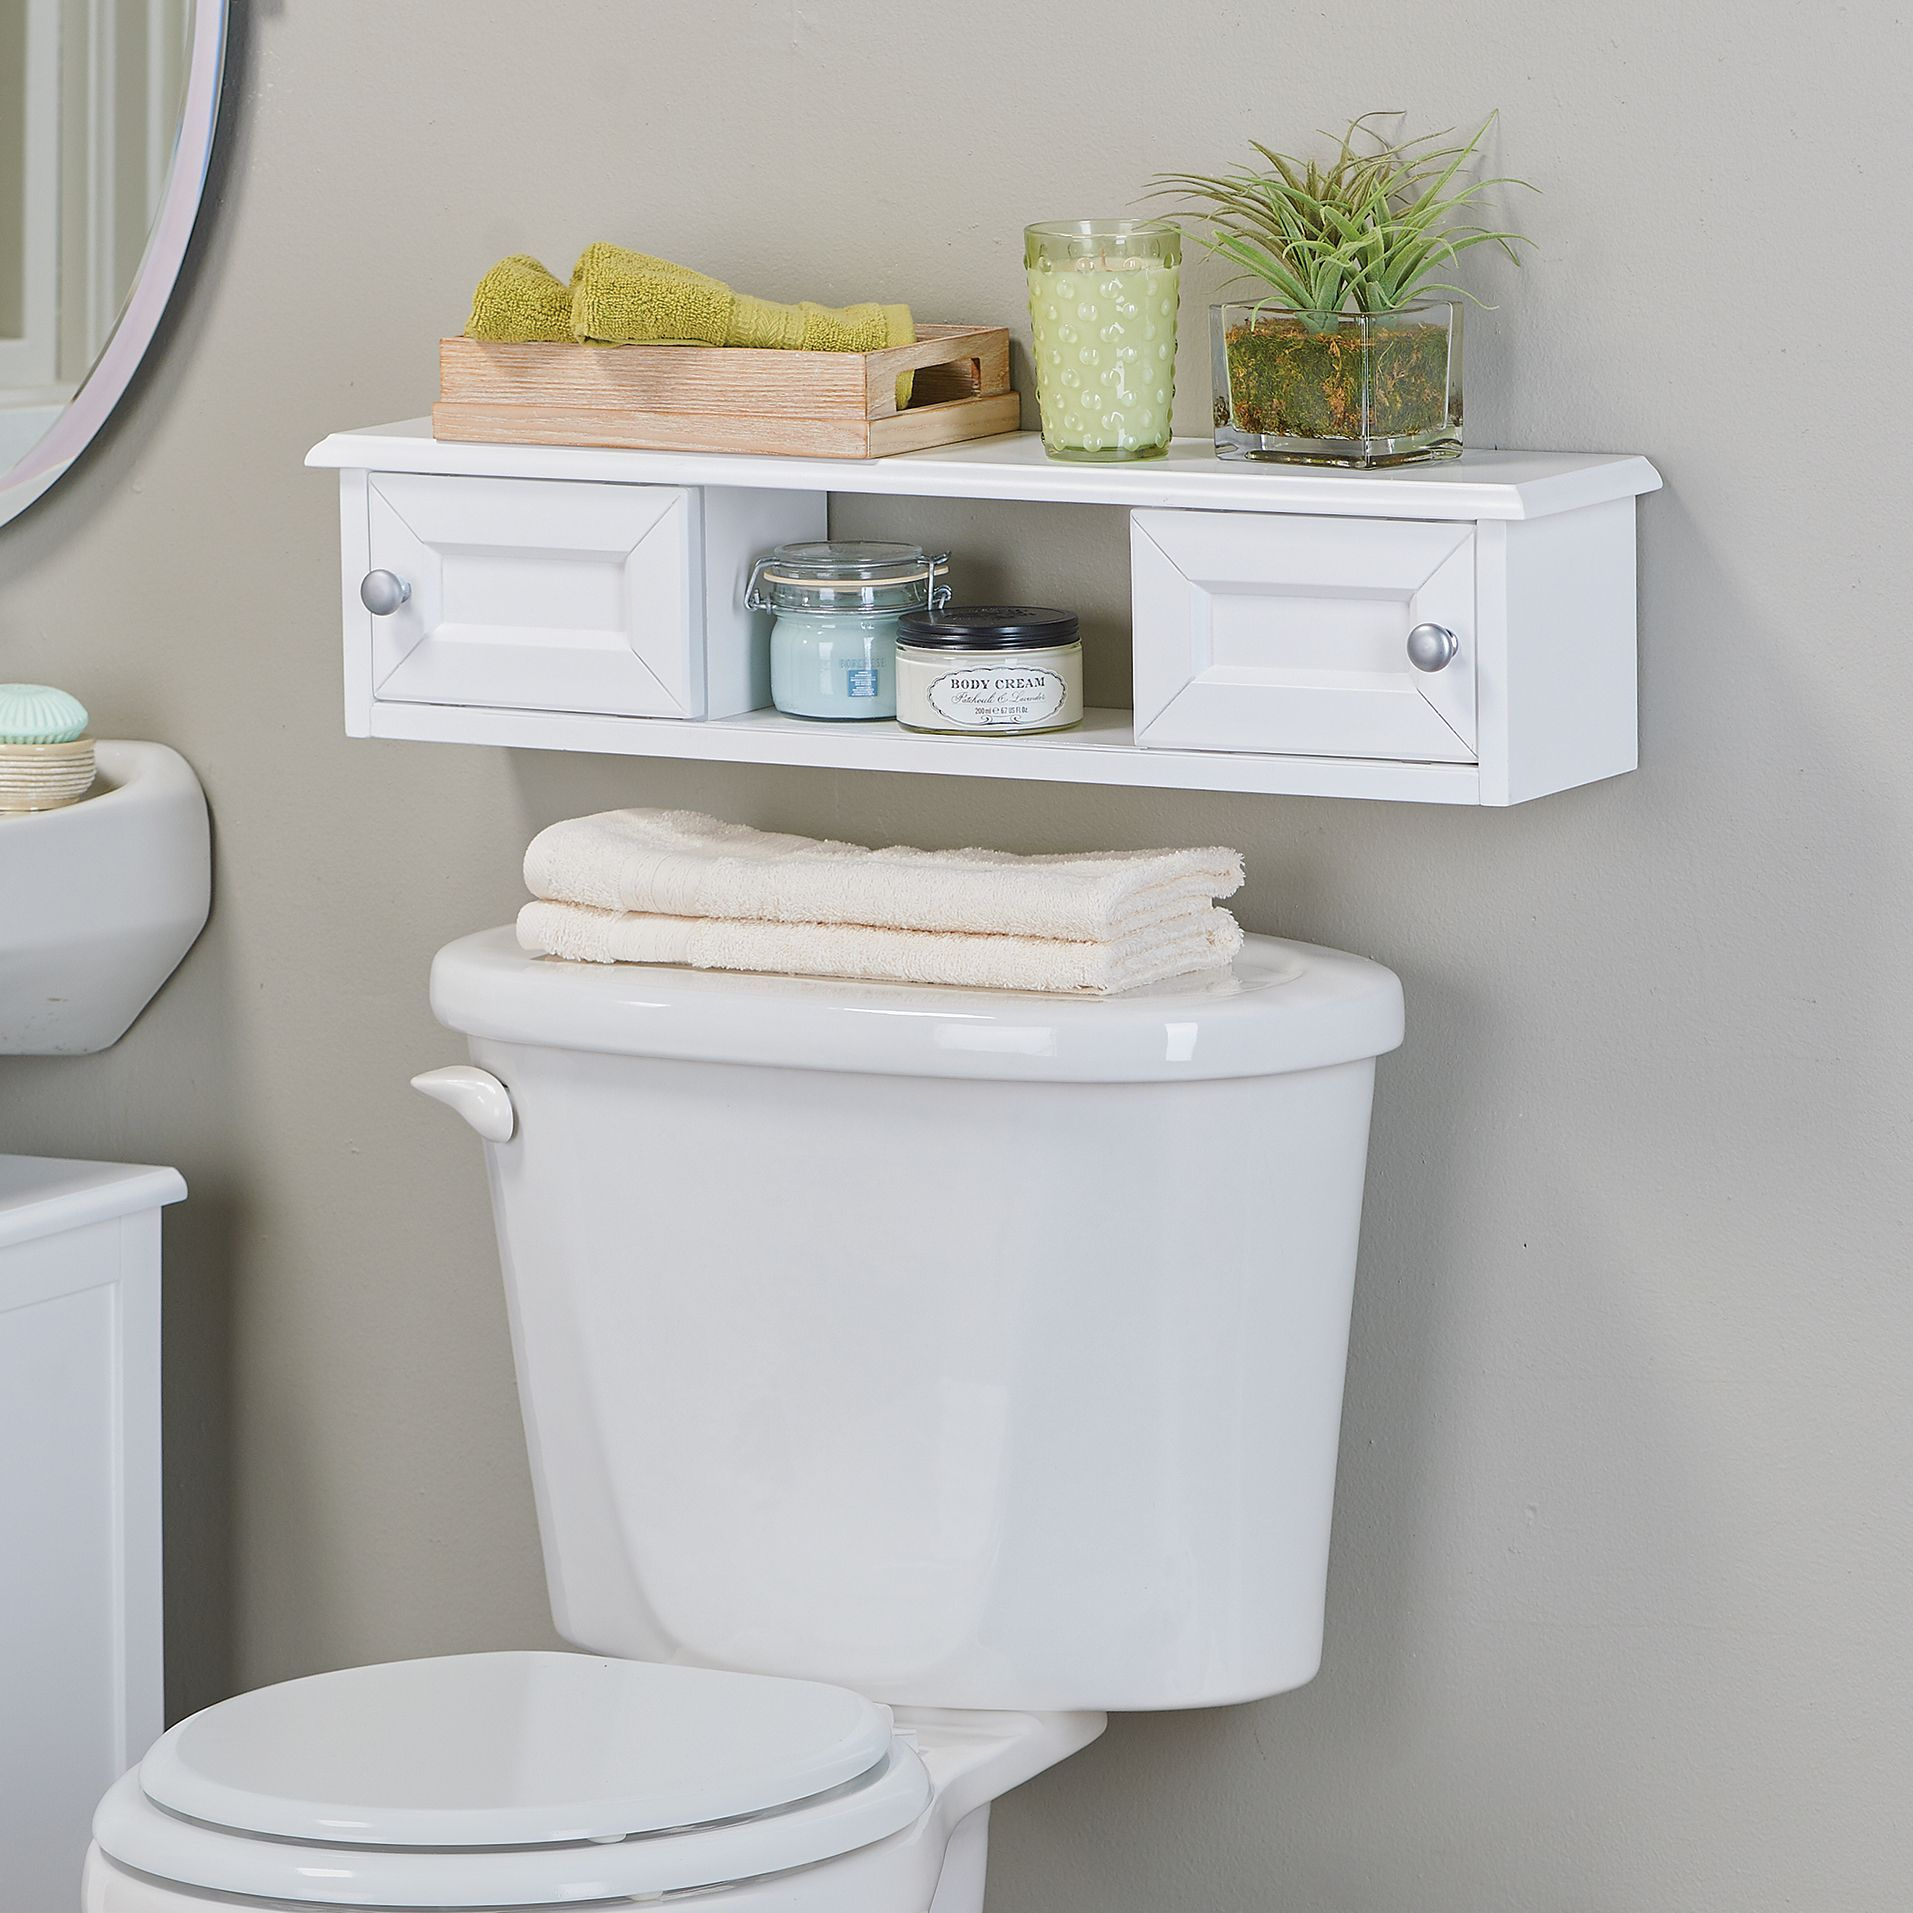 maximize storage space in your bathroom with our weatherby slim wall mounted cabinet this slim cabinet fits over a toilet or on any wall for extra bathroom - Bathroom Cabinets That Fit Over The Toilet